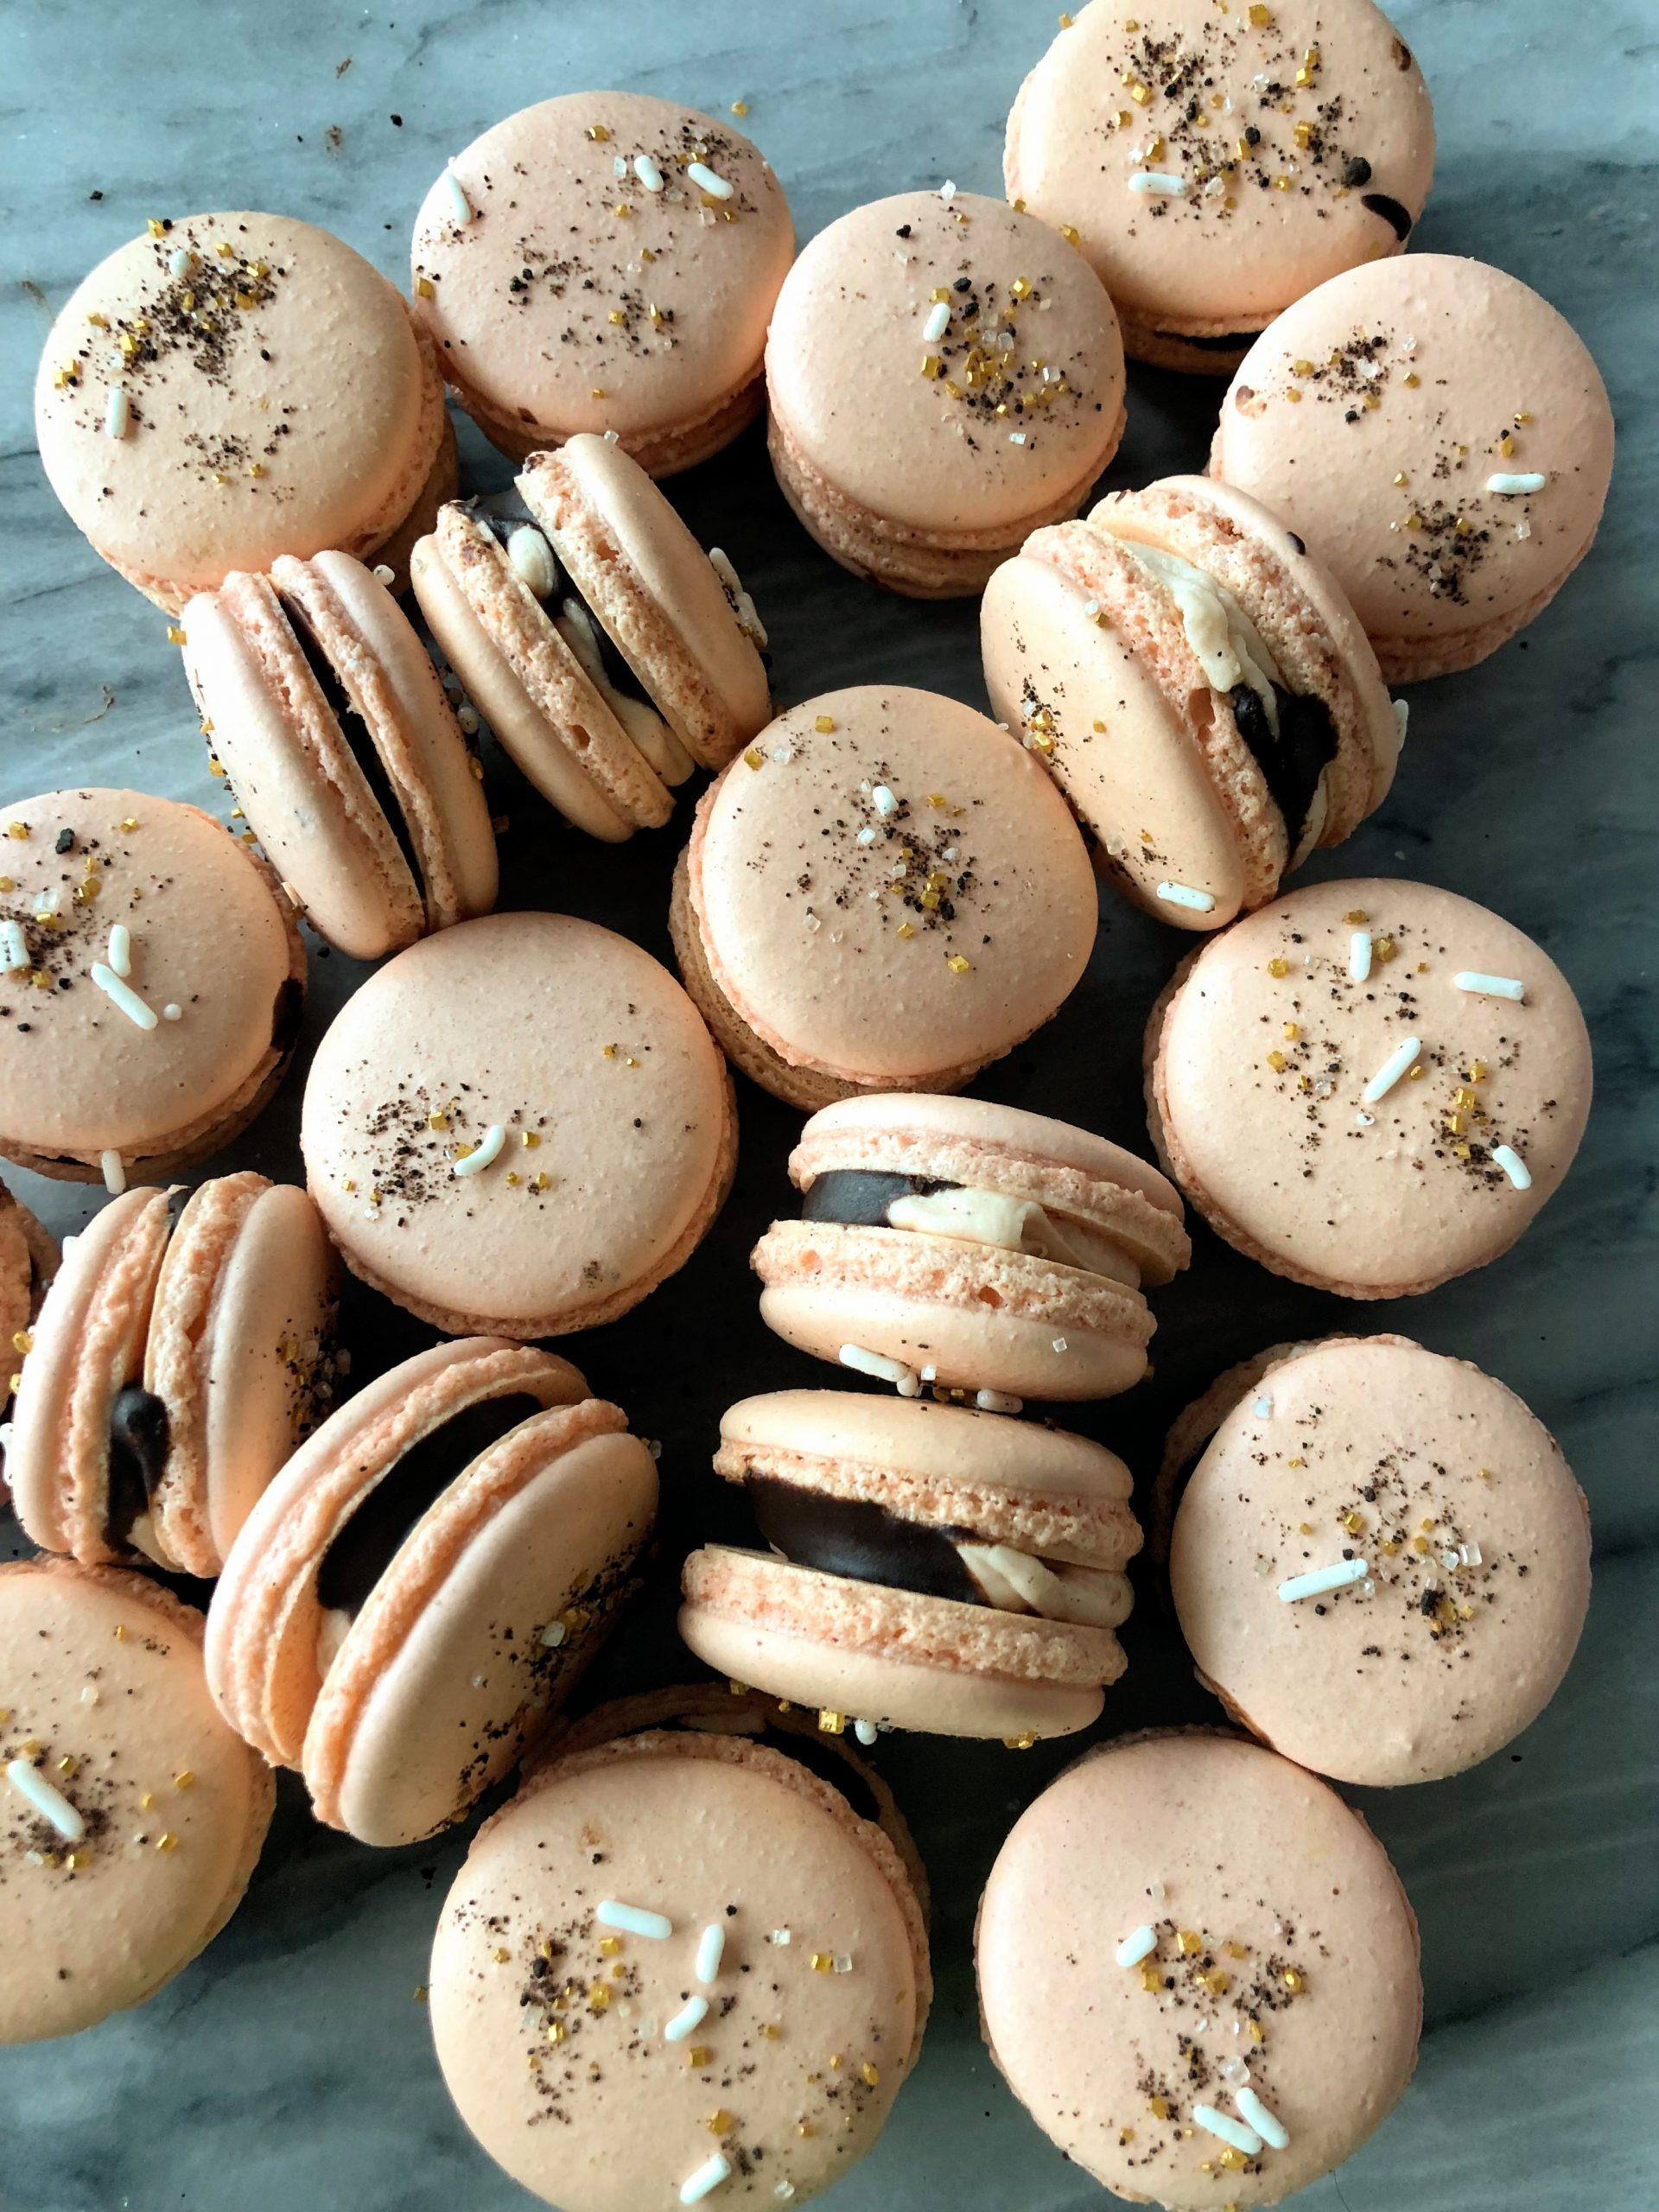 Dress up your Macarons: Five Ideas to Decorate French Macarons